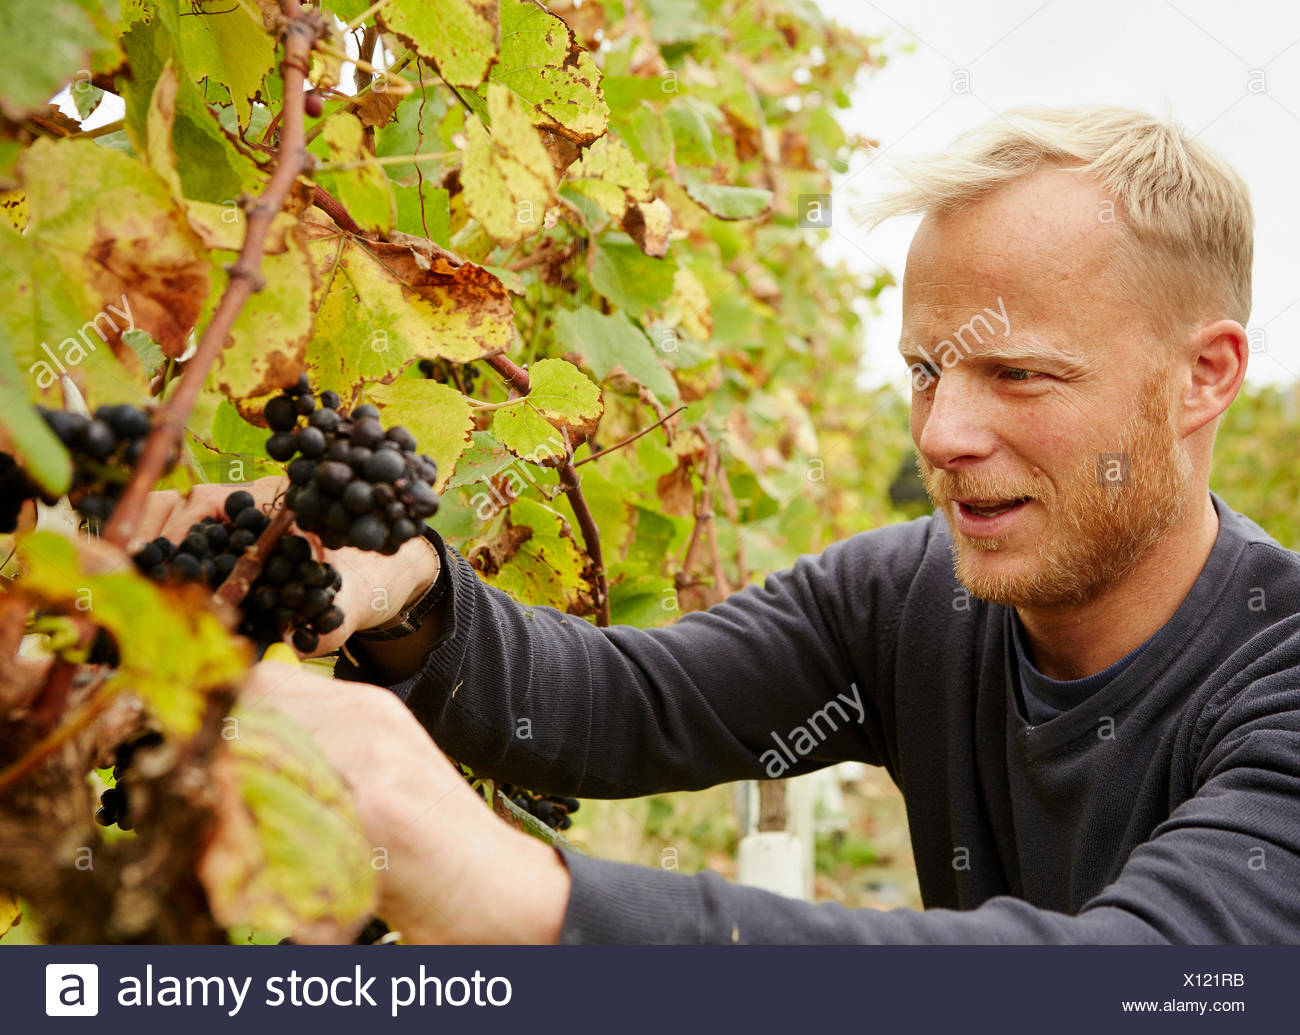 A grape picker at work selecting bunches of grapes on the vine. - Stock Image